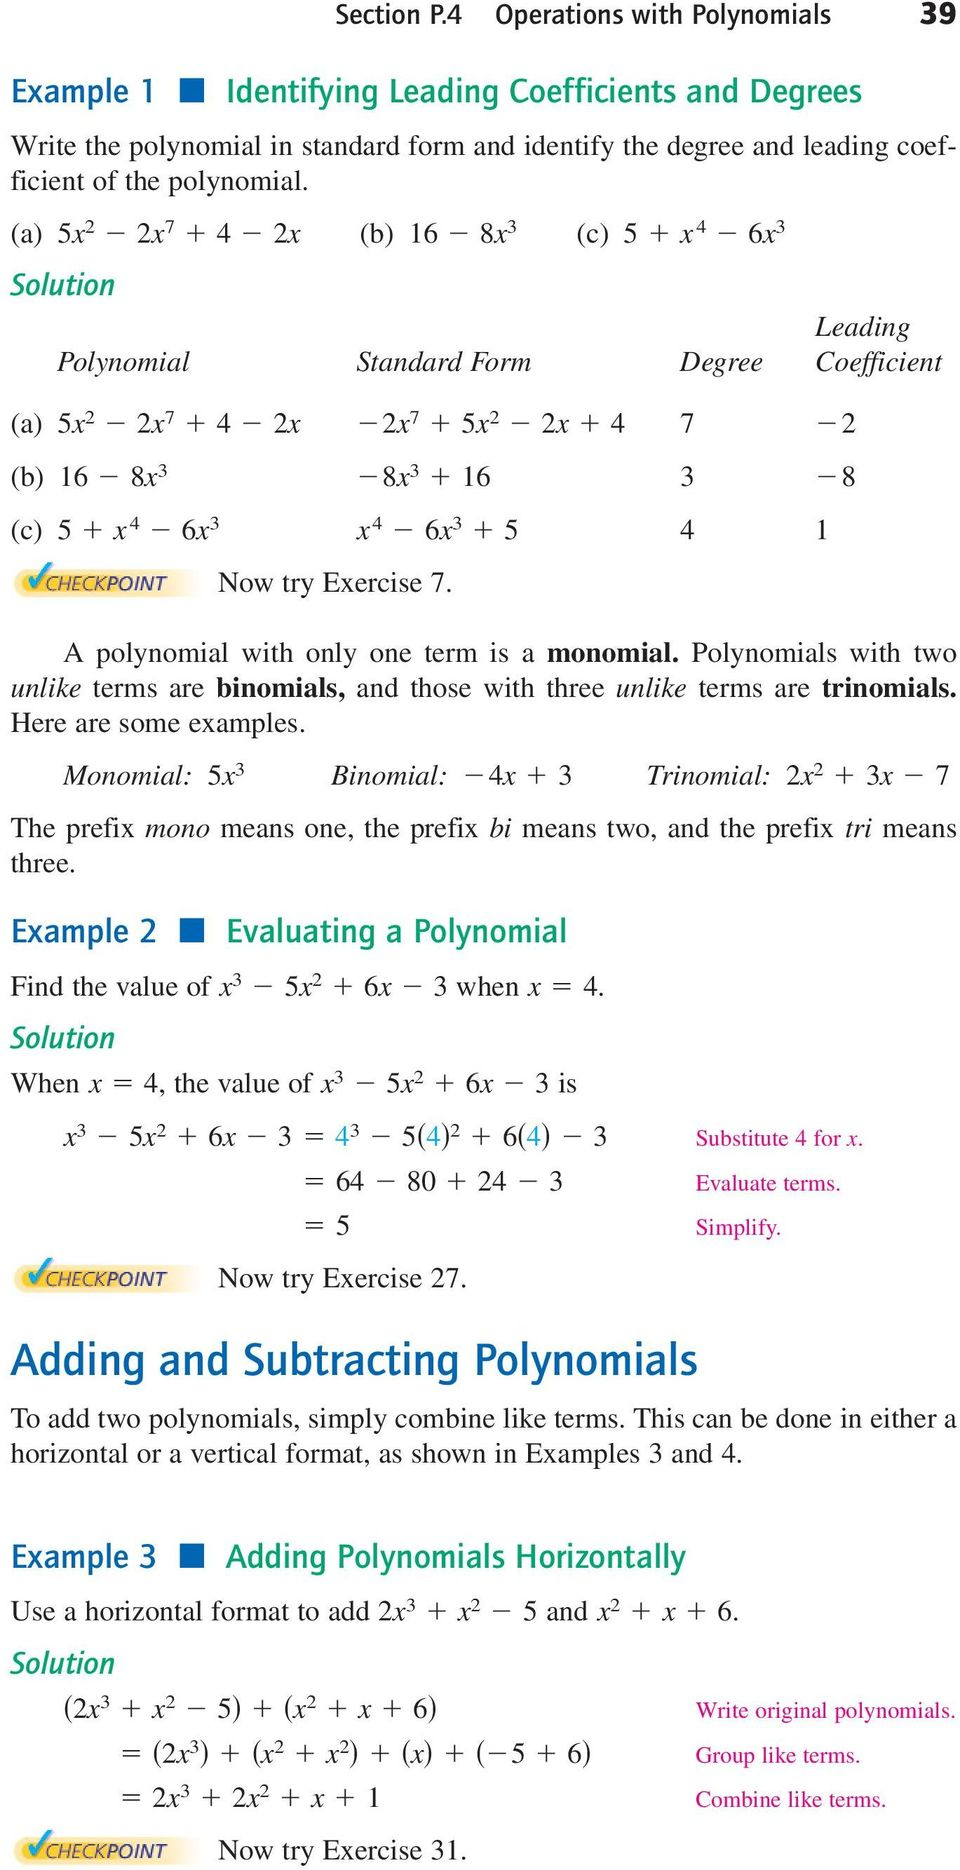 A polynomil with only one term is monomil. Polynomils with two unlike terms re binomils, nd those with three unlike terms re trinomils. Here re some emples.